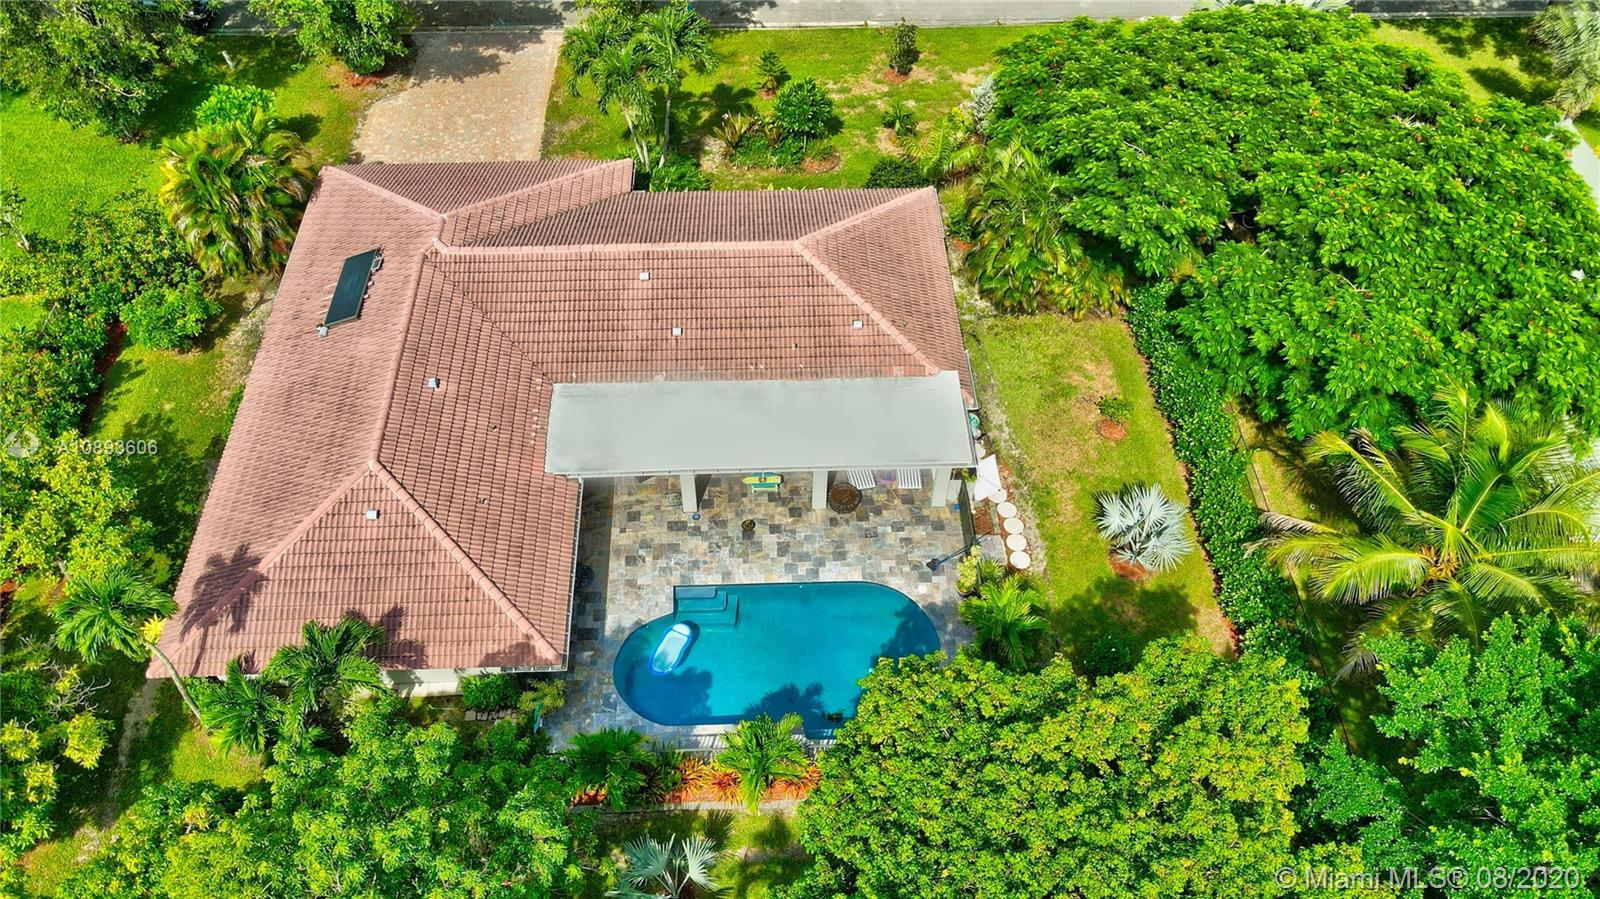 AMAZING HOME with TONS of UPGRADES. 4/3 canal waterfront pool home is located in Coral Springs Country Club, big lot with NO HOA! Impact Everything, Beautiful Kitchen, New Rectified Porcelain Tile, Patio Roof with Tung and Groove Ceiling, New Travertine Marble Pool Deck, Re-Coated Pool, New Pool Pump, New Pool Gulfstream Heater,  New Appliances, New Bathrooms with Tung and Groove Ceiling, New Window Treatment, New Sprinklers Lines, New Garage Door, New Garage Motor, New Gutters, New Crown Molding etc etc. ***SELLER REPLACING UNDERGROUND CAST IRON WITH PVC AT OWNER'S EXPENSE*** Show and Sell. Call listing agent with 24 hours notice.